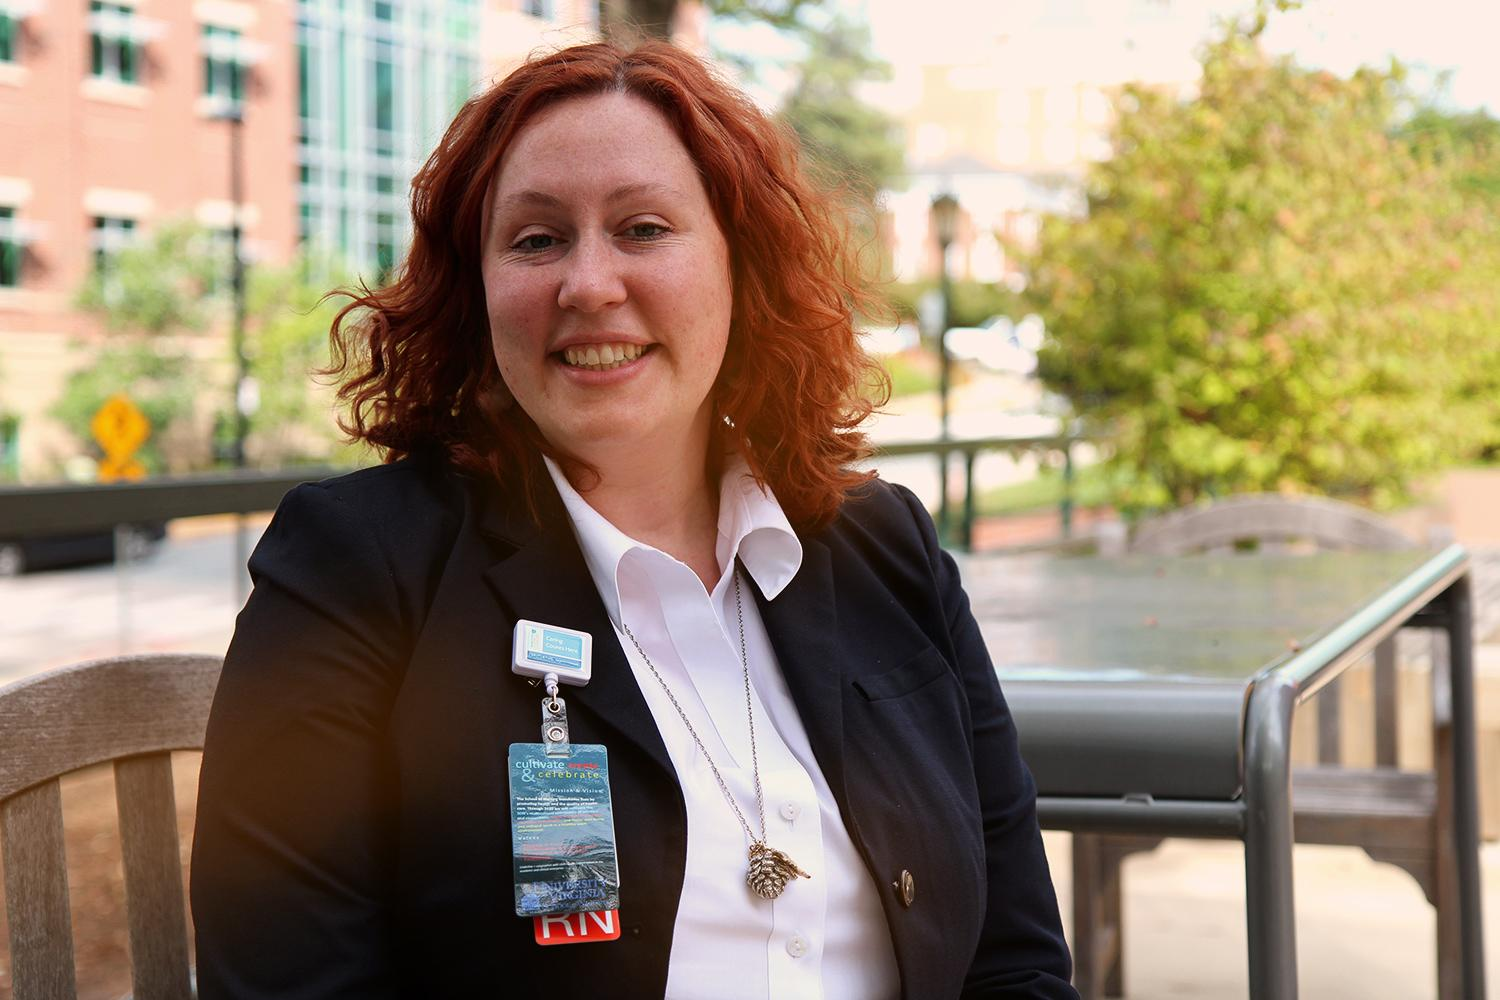 UVA nursing professor Emma Mitchell is researching whether at-home testing can determine a woman's risk for cervical cancer.